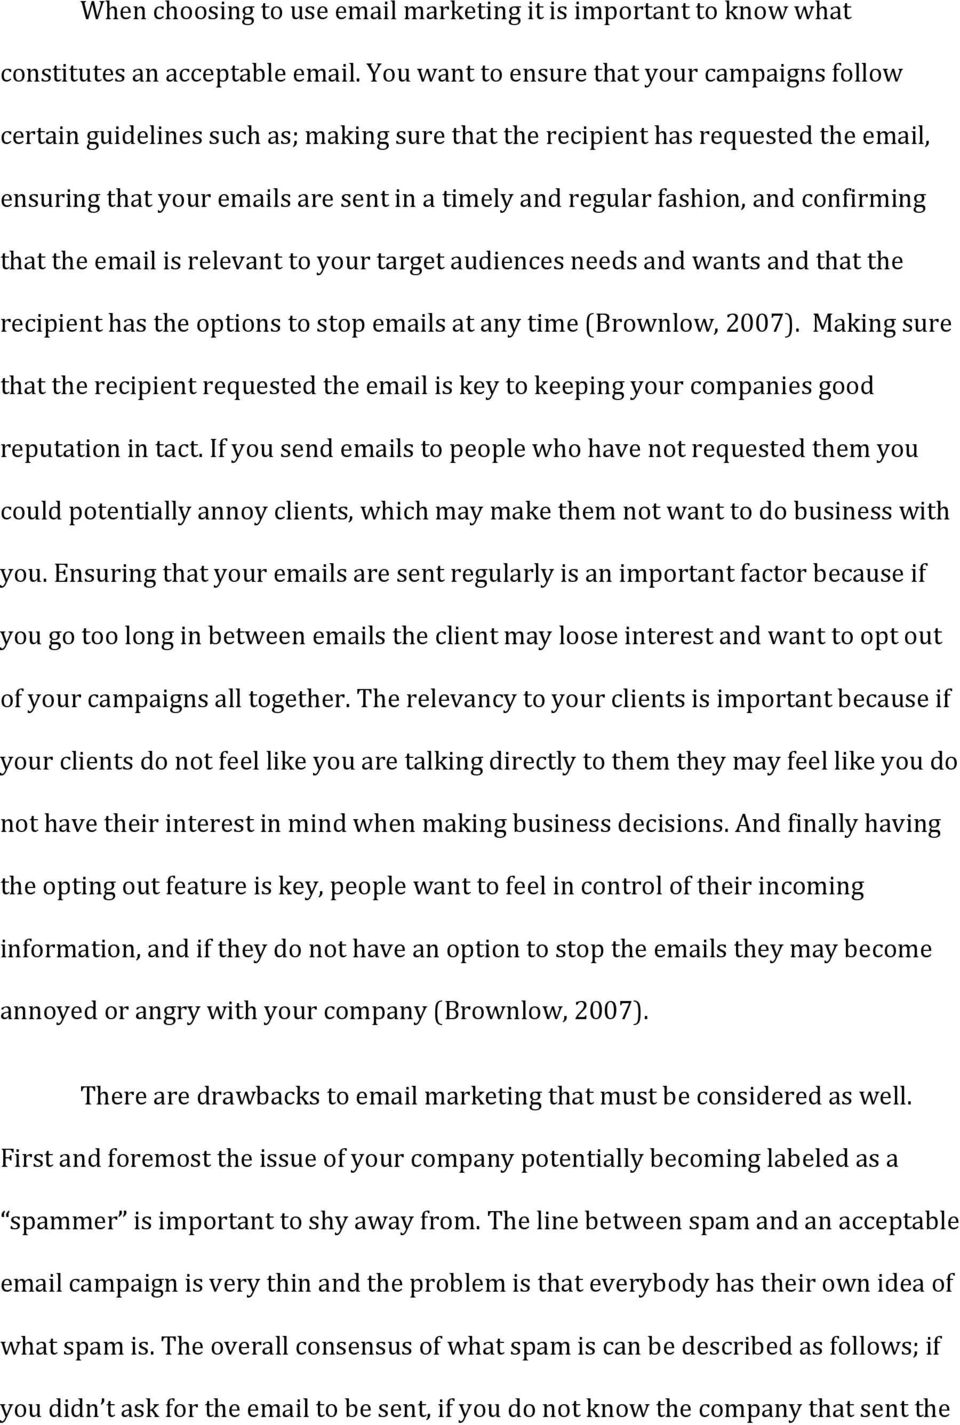 and confirming that the email is relevant to your target audiences needs and wants and that the recipient has the options to stop emails at any time (Brownlow, 2007).